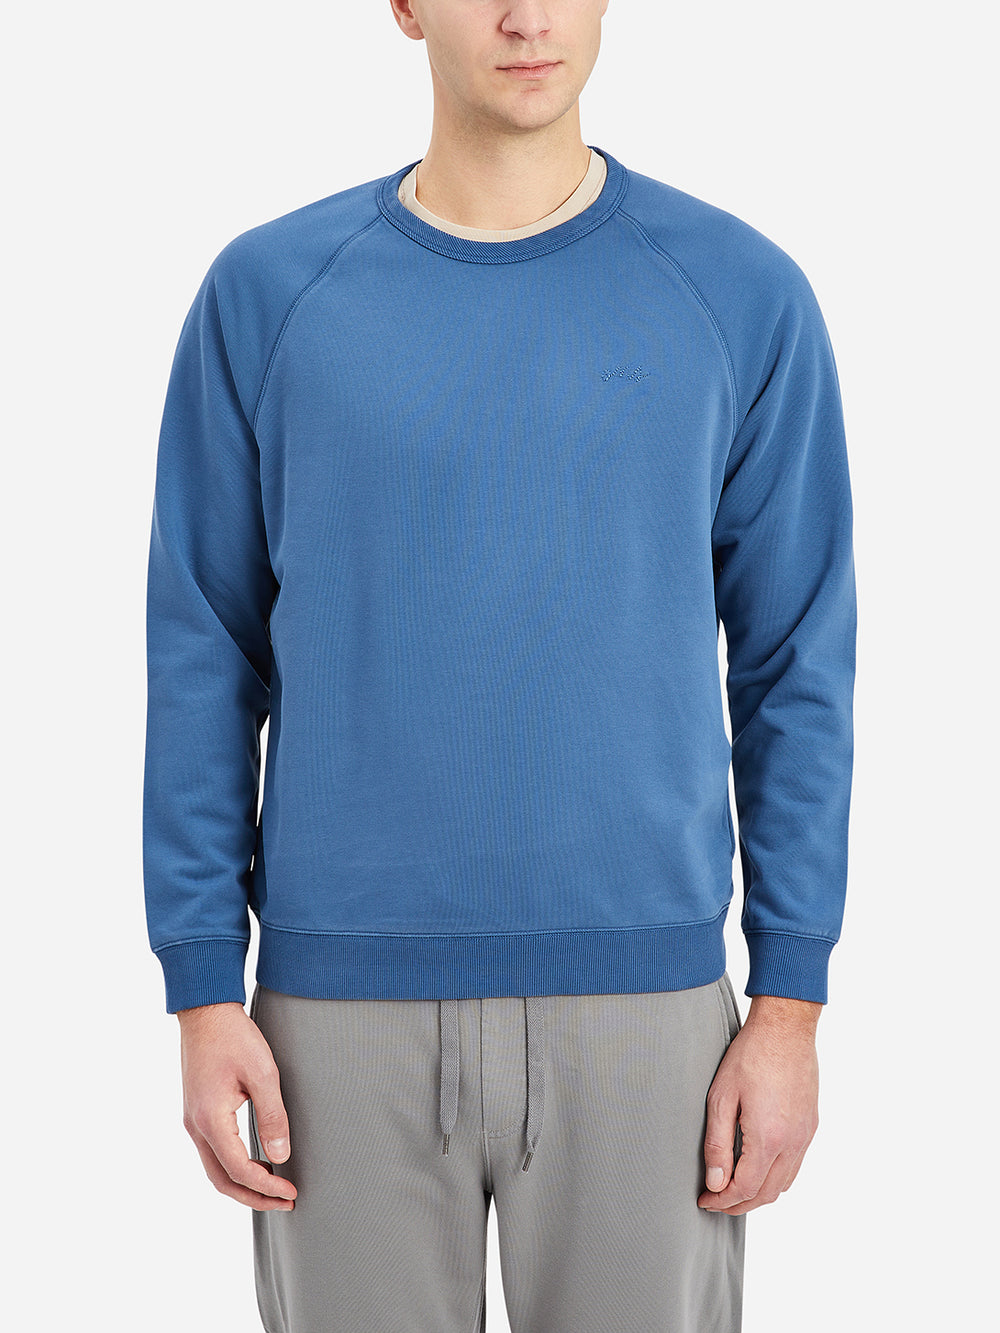 Ensign Blue Deon Crewneck Raglan Sweatshirt Men's cotton sweatshirts ONS Clothing